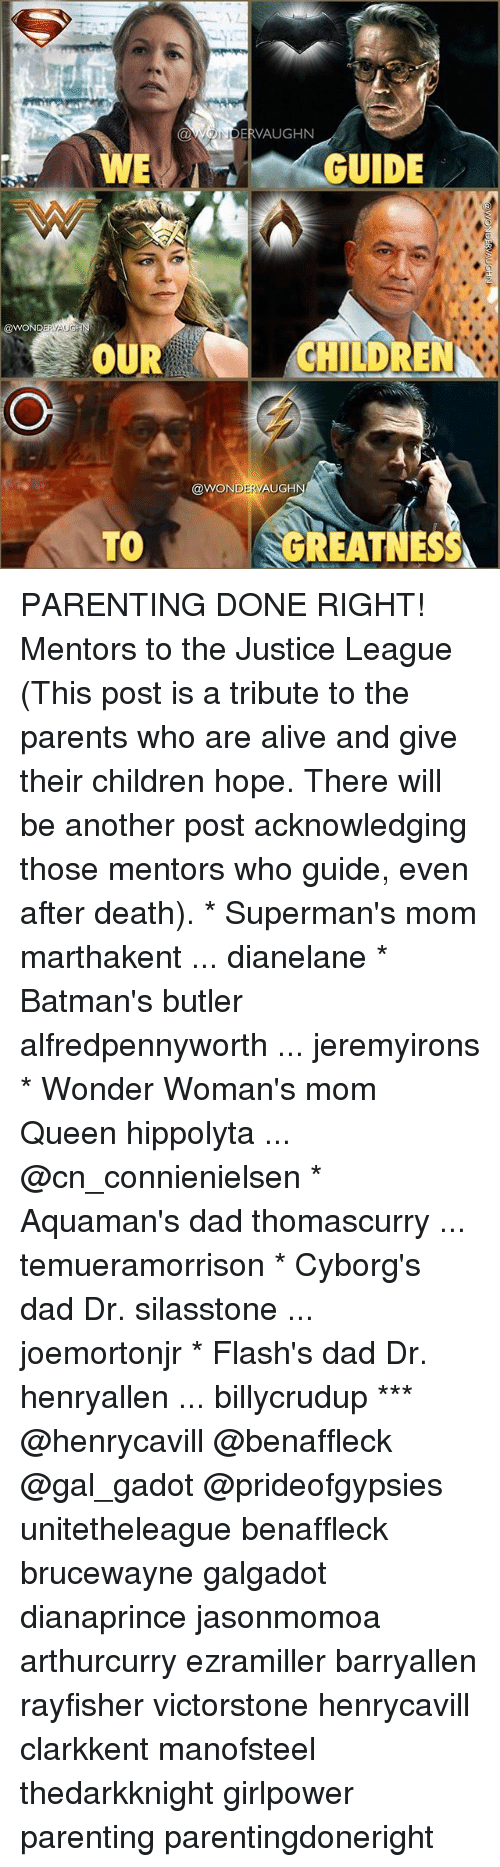 Parenting Done Right: OWONDERVAUGHN  WE  GUIDE  @WONDERVAU  OUR  CHILDREN  @WONDERVAUGH  TOGREATNES PARENTING DONE RIGHT! Mentors to the Justice League (This post is a tribute to the parents who are alive and give their children hope. There will be another post acknowledging those mentors who guide, even after death). * Superman's mom marthakent ... dianelane * Batman's butler alfredpennyworth ... jeremyirons * Wonder Woman's mom Queen hippolyta ... @cn_connienielsen * Aquaman's dad thomascurry ... temueramorrison * Cyborg's dad Dr. silasstone ... joemortonjr * Flash's dad Dr. henryallen ... billycrudup *** @henrycavill @benaffleck @gal_gadot @prideofgypsies unitetheleague benaffleck brucewayne galgadot dianaprince jasonmomoa arthurcurry ezramiller barryallen rayfisher victorstone henrycavill clarkkent manofsteel thedarkknight girlpower parenting parentingdoneright